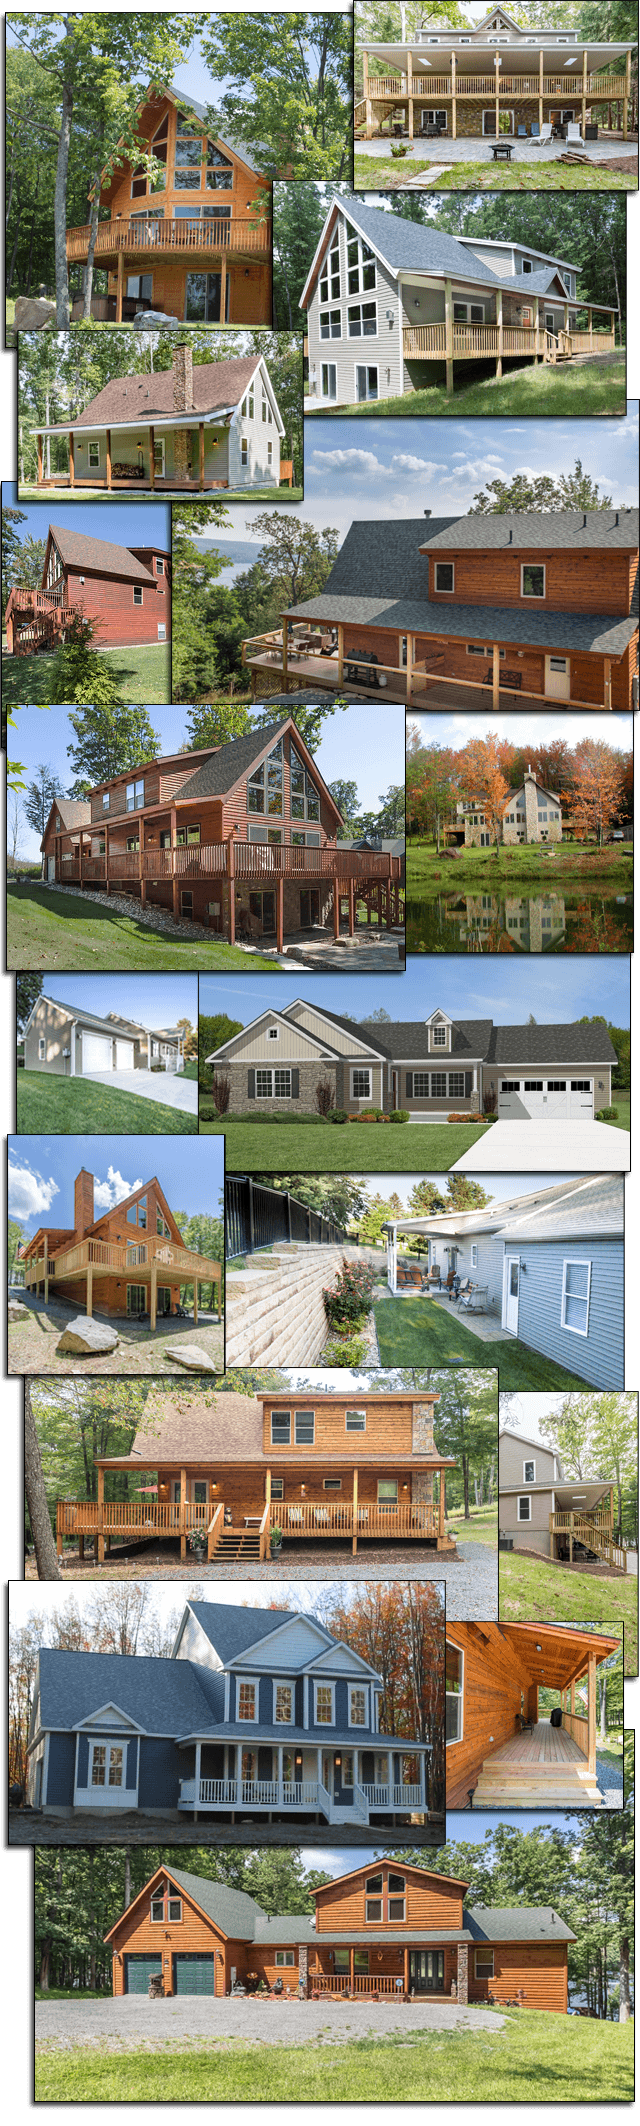 Homes Collage